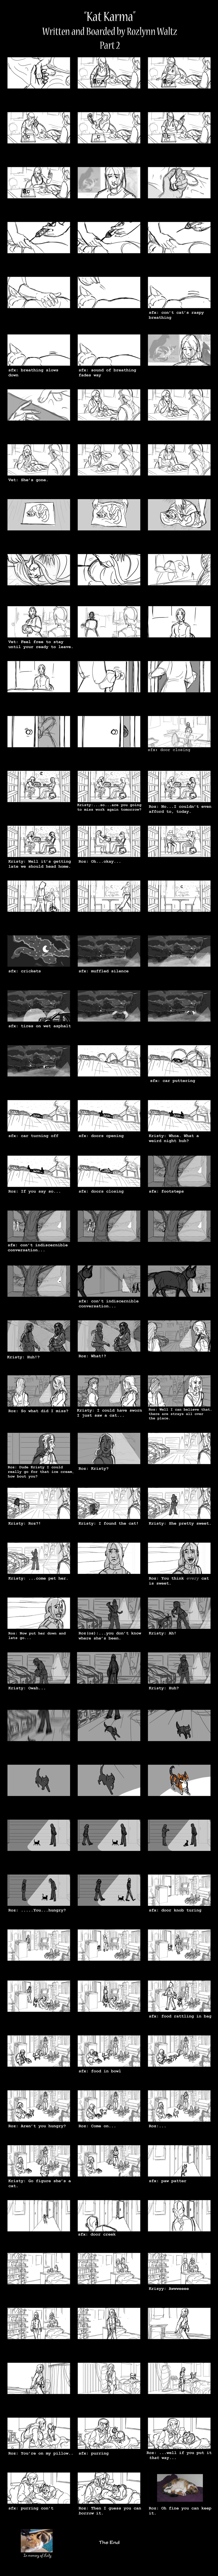 kat_karma___storyboards___part_2_by_rozlynnwaltz-d5rk1gr